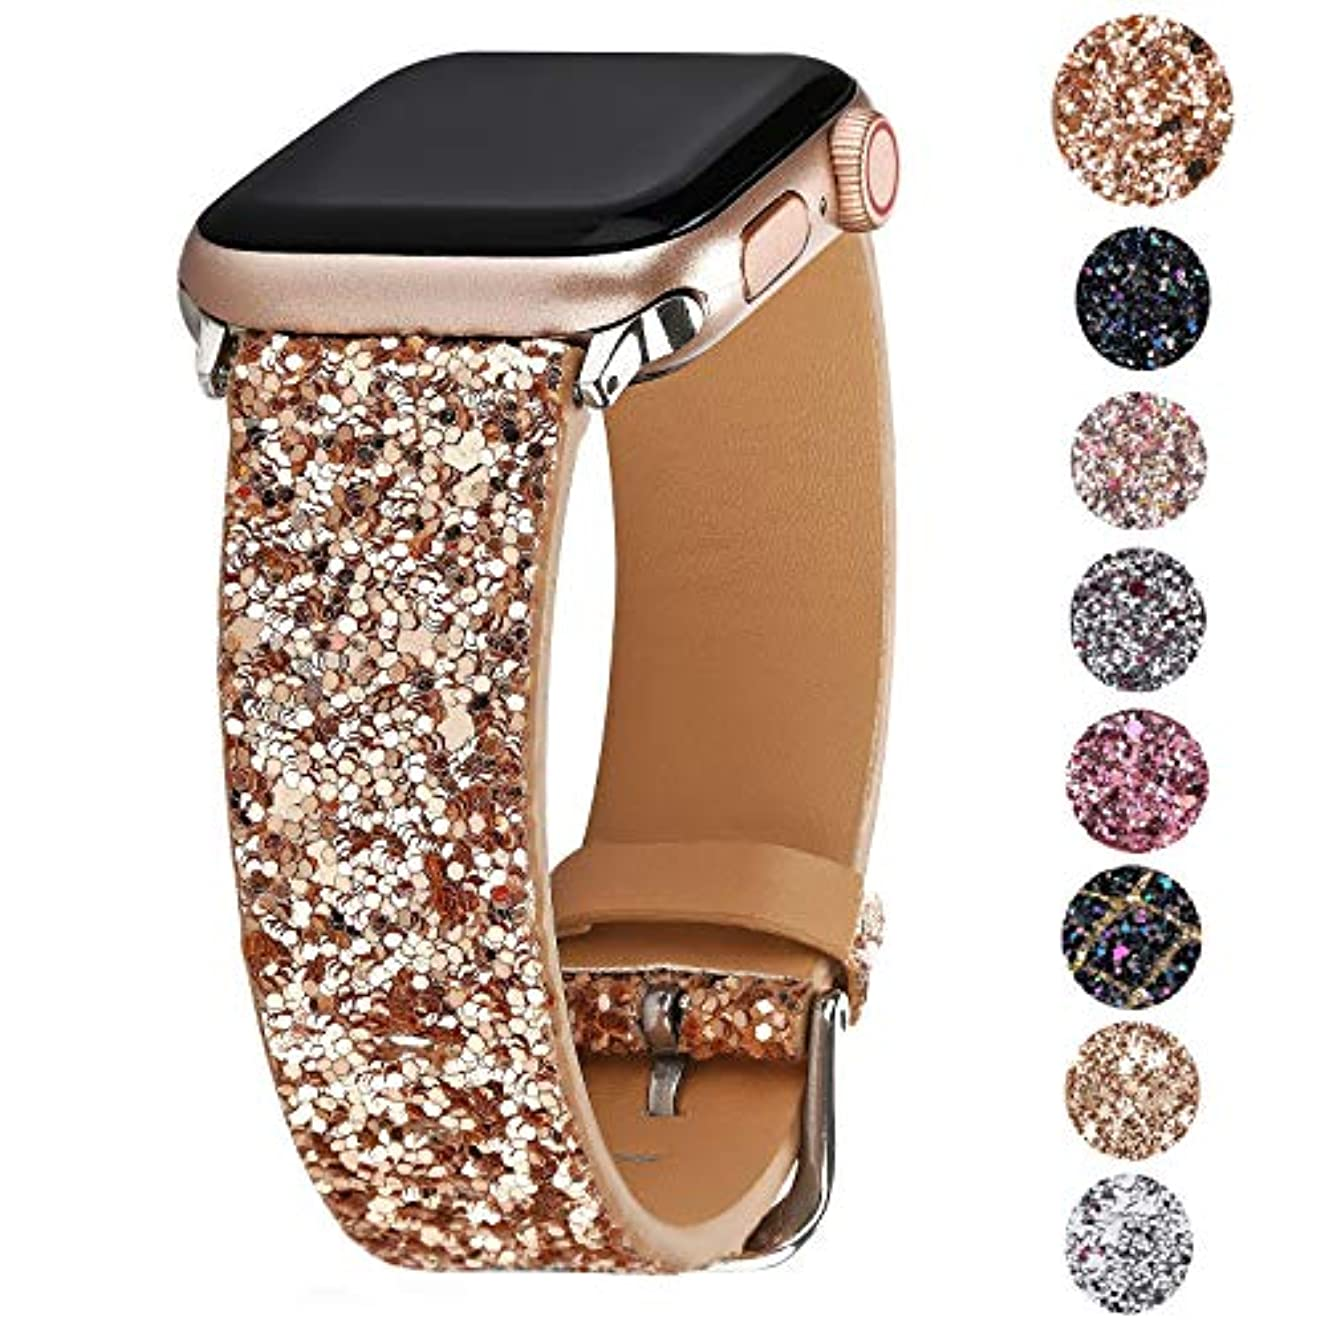 Greaciary Glitter Bling Band Compatible for iWatch Band 38mm 40mm 42mm 44mm,Leather Luxury Shiny Sparkle Strap Wristbands Women Replacement for iWatch Series 4/3/2/1